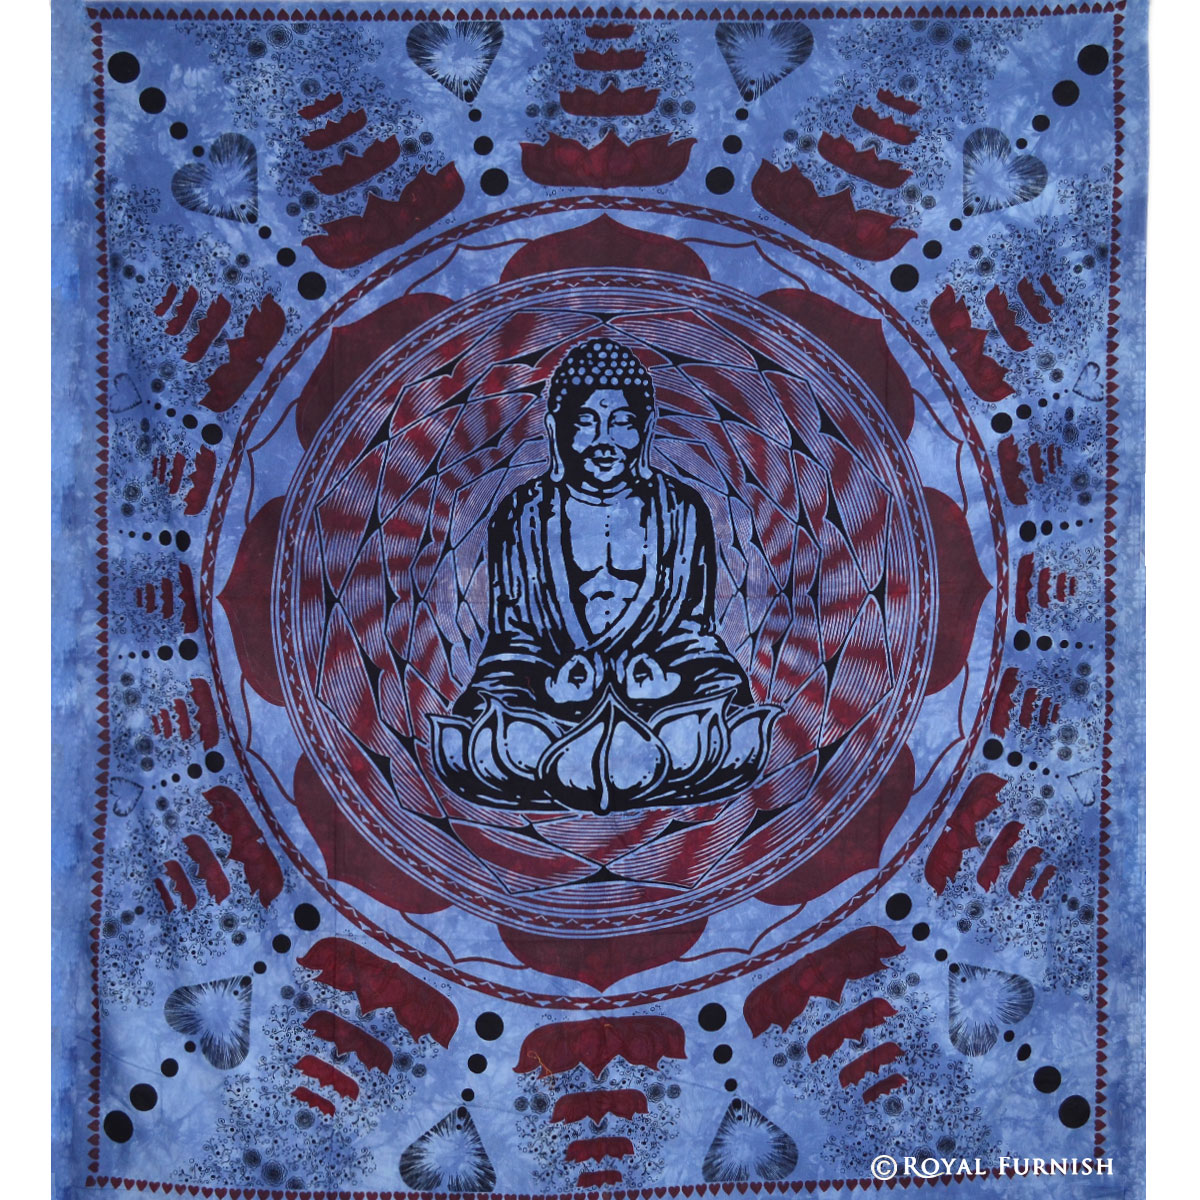 Decorative Wall Hanging Tapestry : Blue indian buddha tapestry wall hanging decorative art